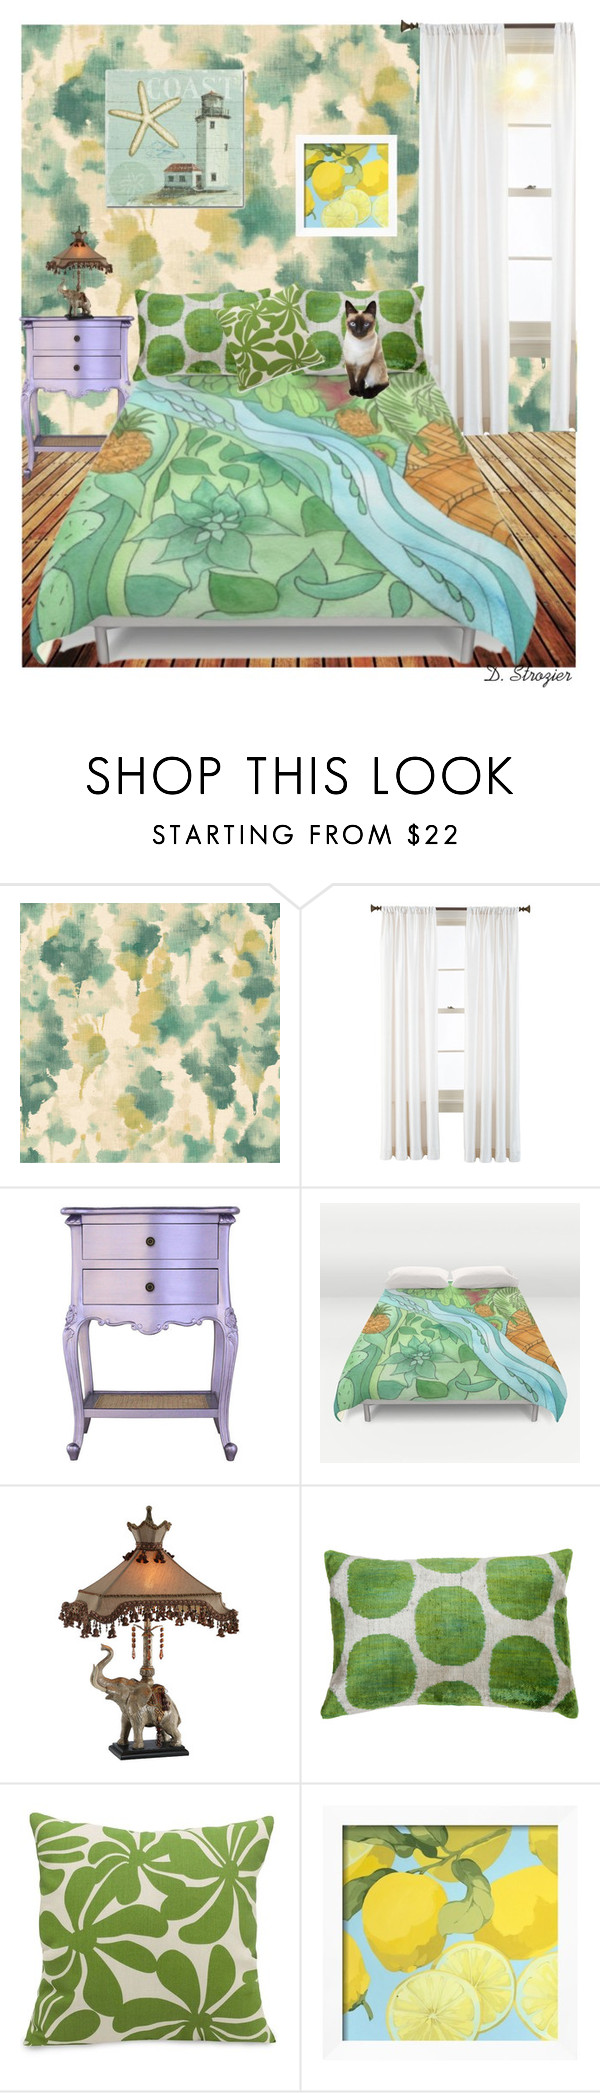 """""""Tropical Bedroom"""" by deborah-strozier ❤ liked on Polyvore featuring interior, interiors, interior design, home, home decor, interior decorating, Ballard Designs, Royal Velvet, Majestic Home Goods and Trademark Fine Art"""